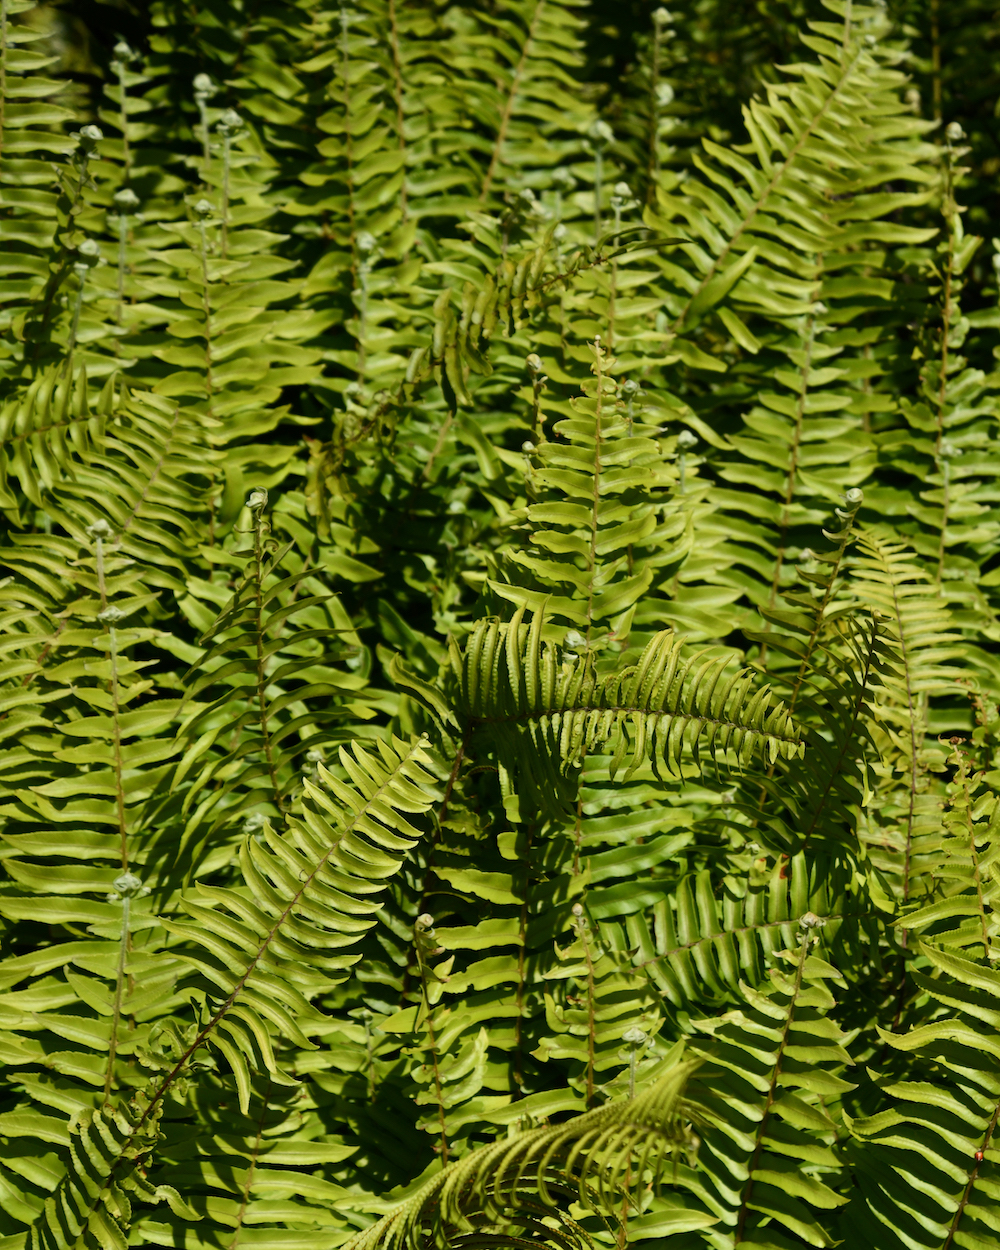 ferns in the galapagos islands